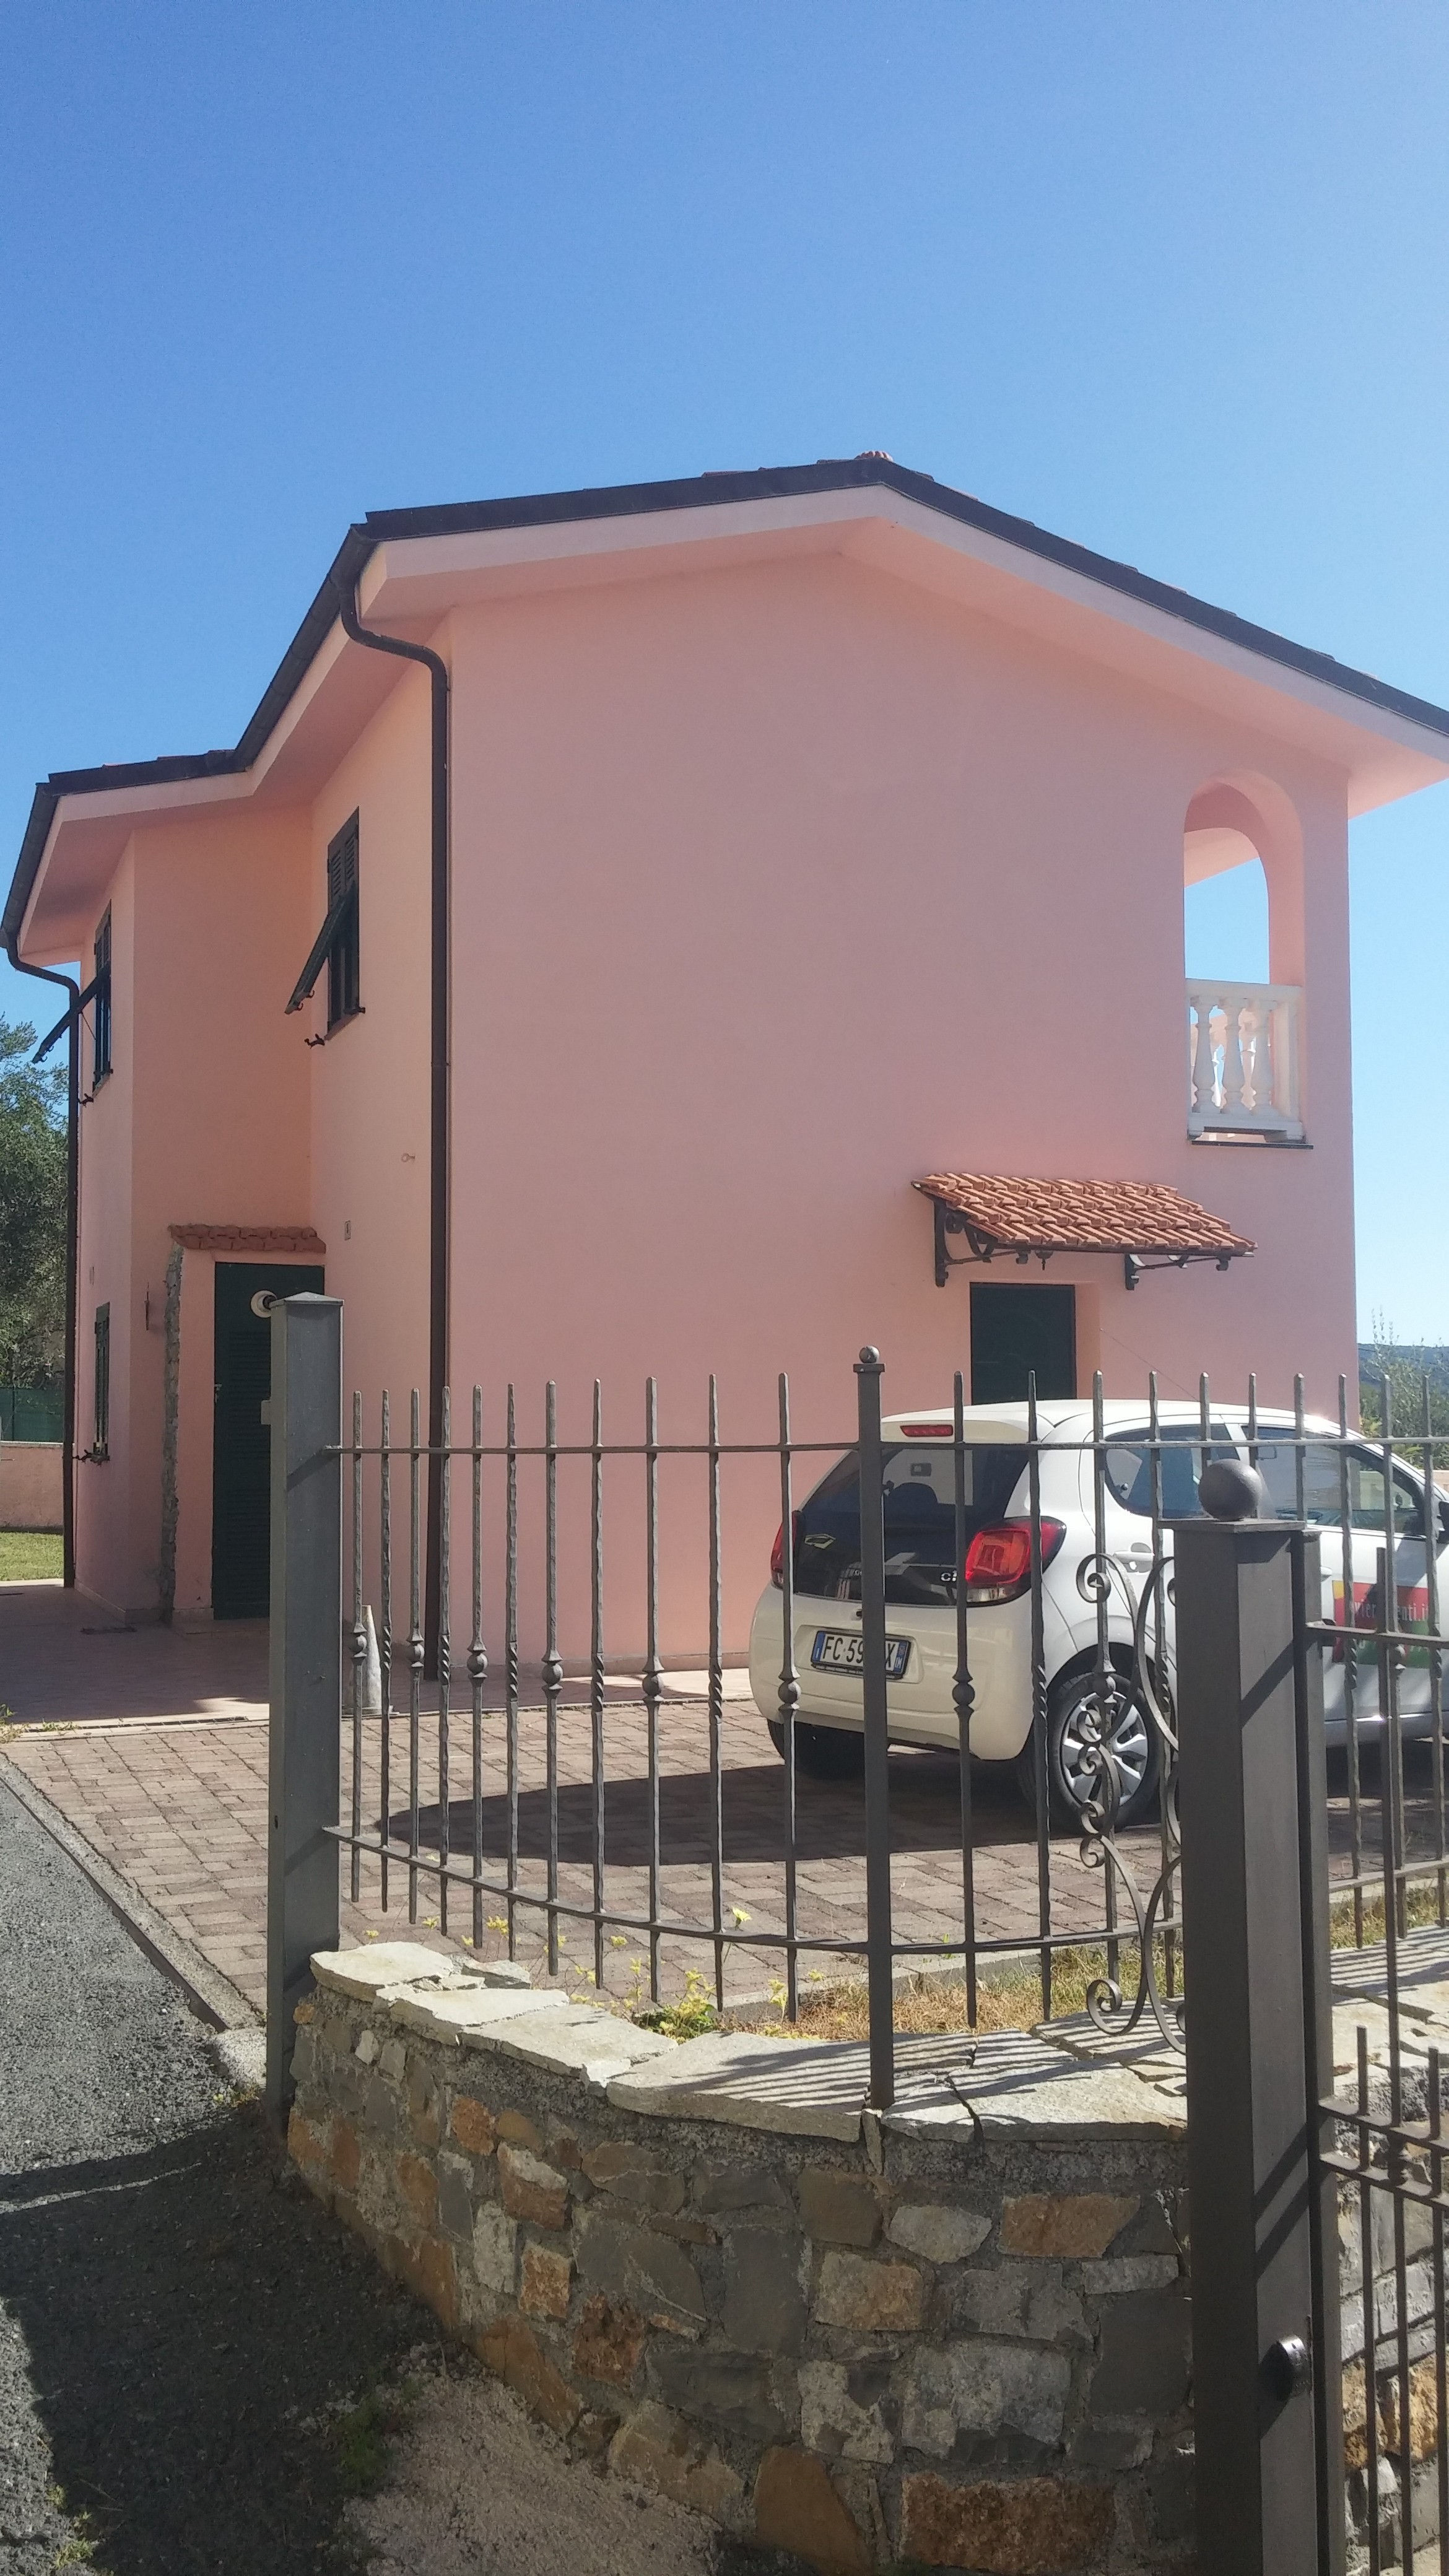 Furnished detached house with garden and parking spaces in Borgo Sant'Agata